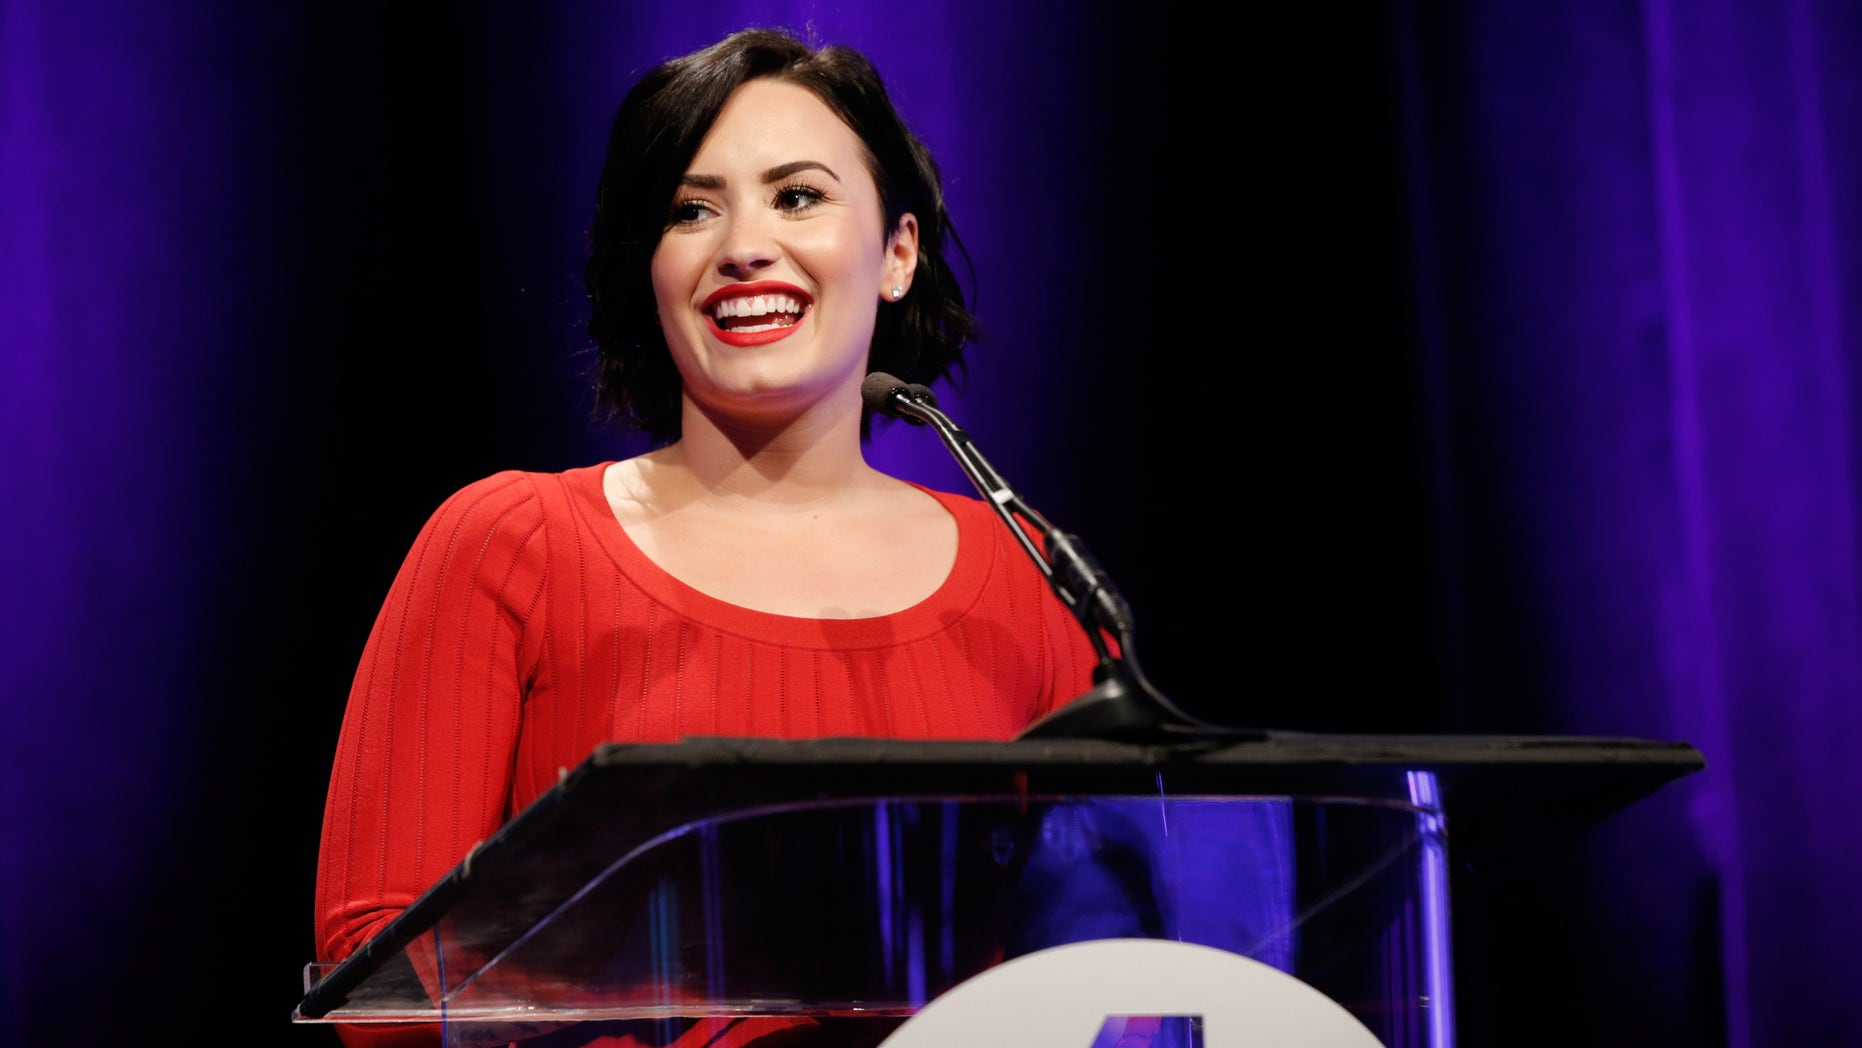 Lovato at the 2nd Annual unite4:humanity on February 19, 2015 in Los Angeles, California.